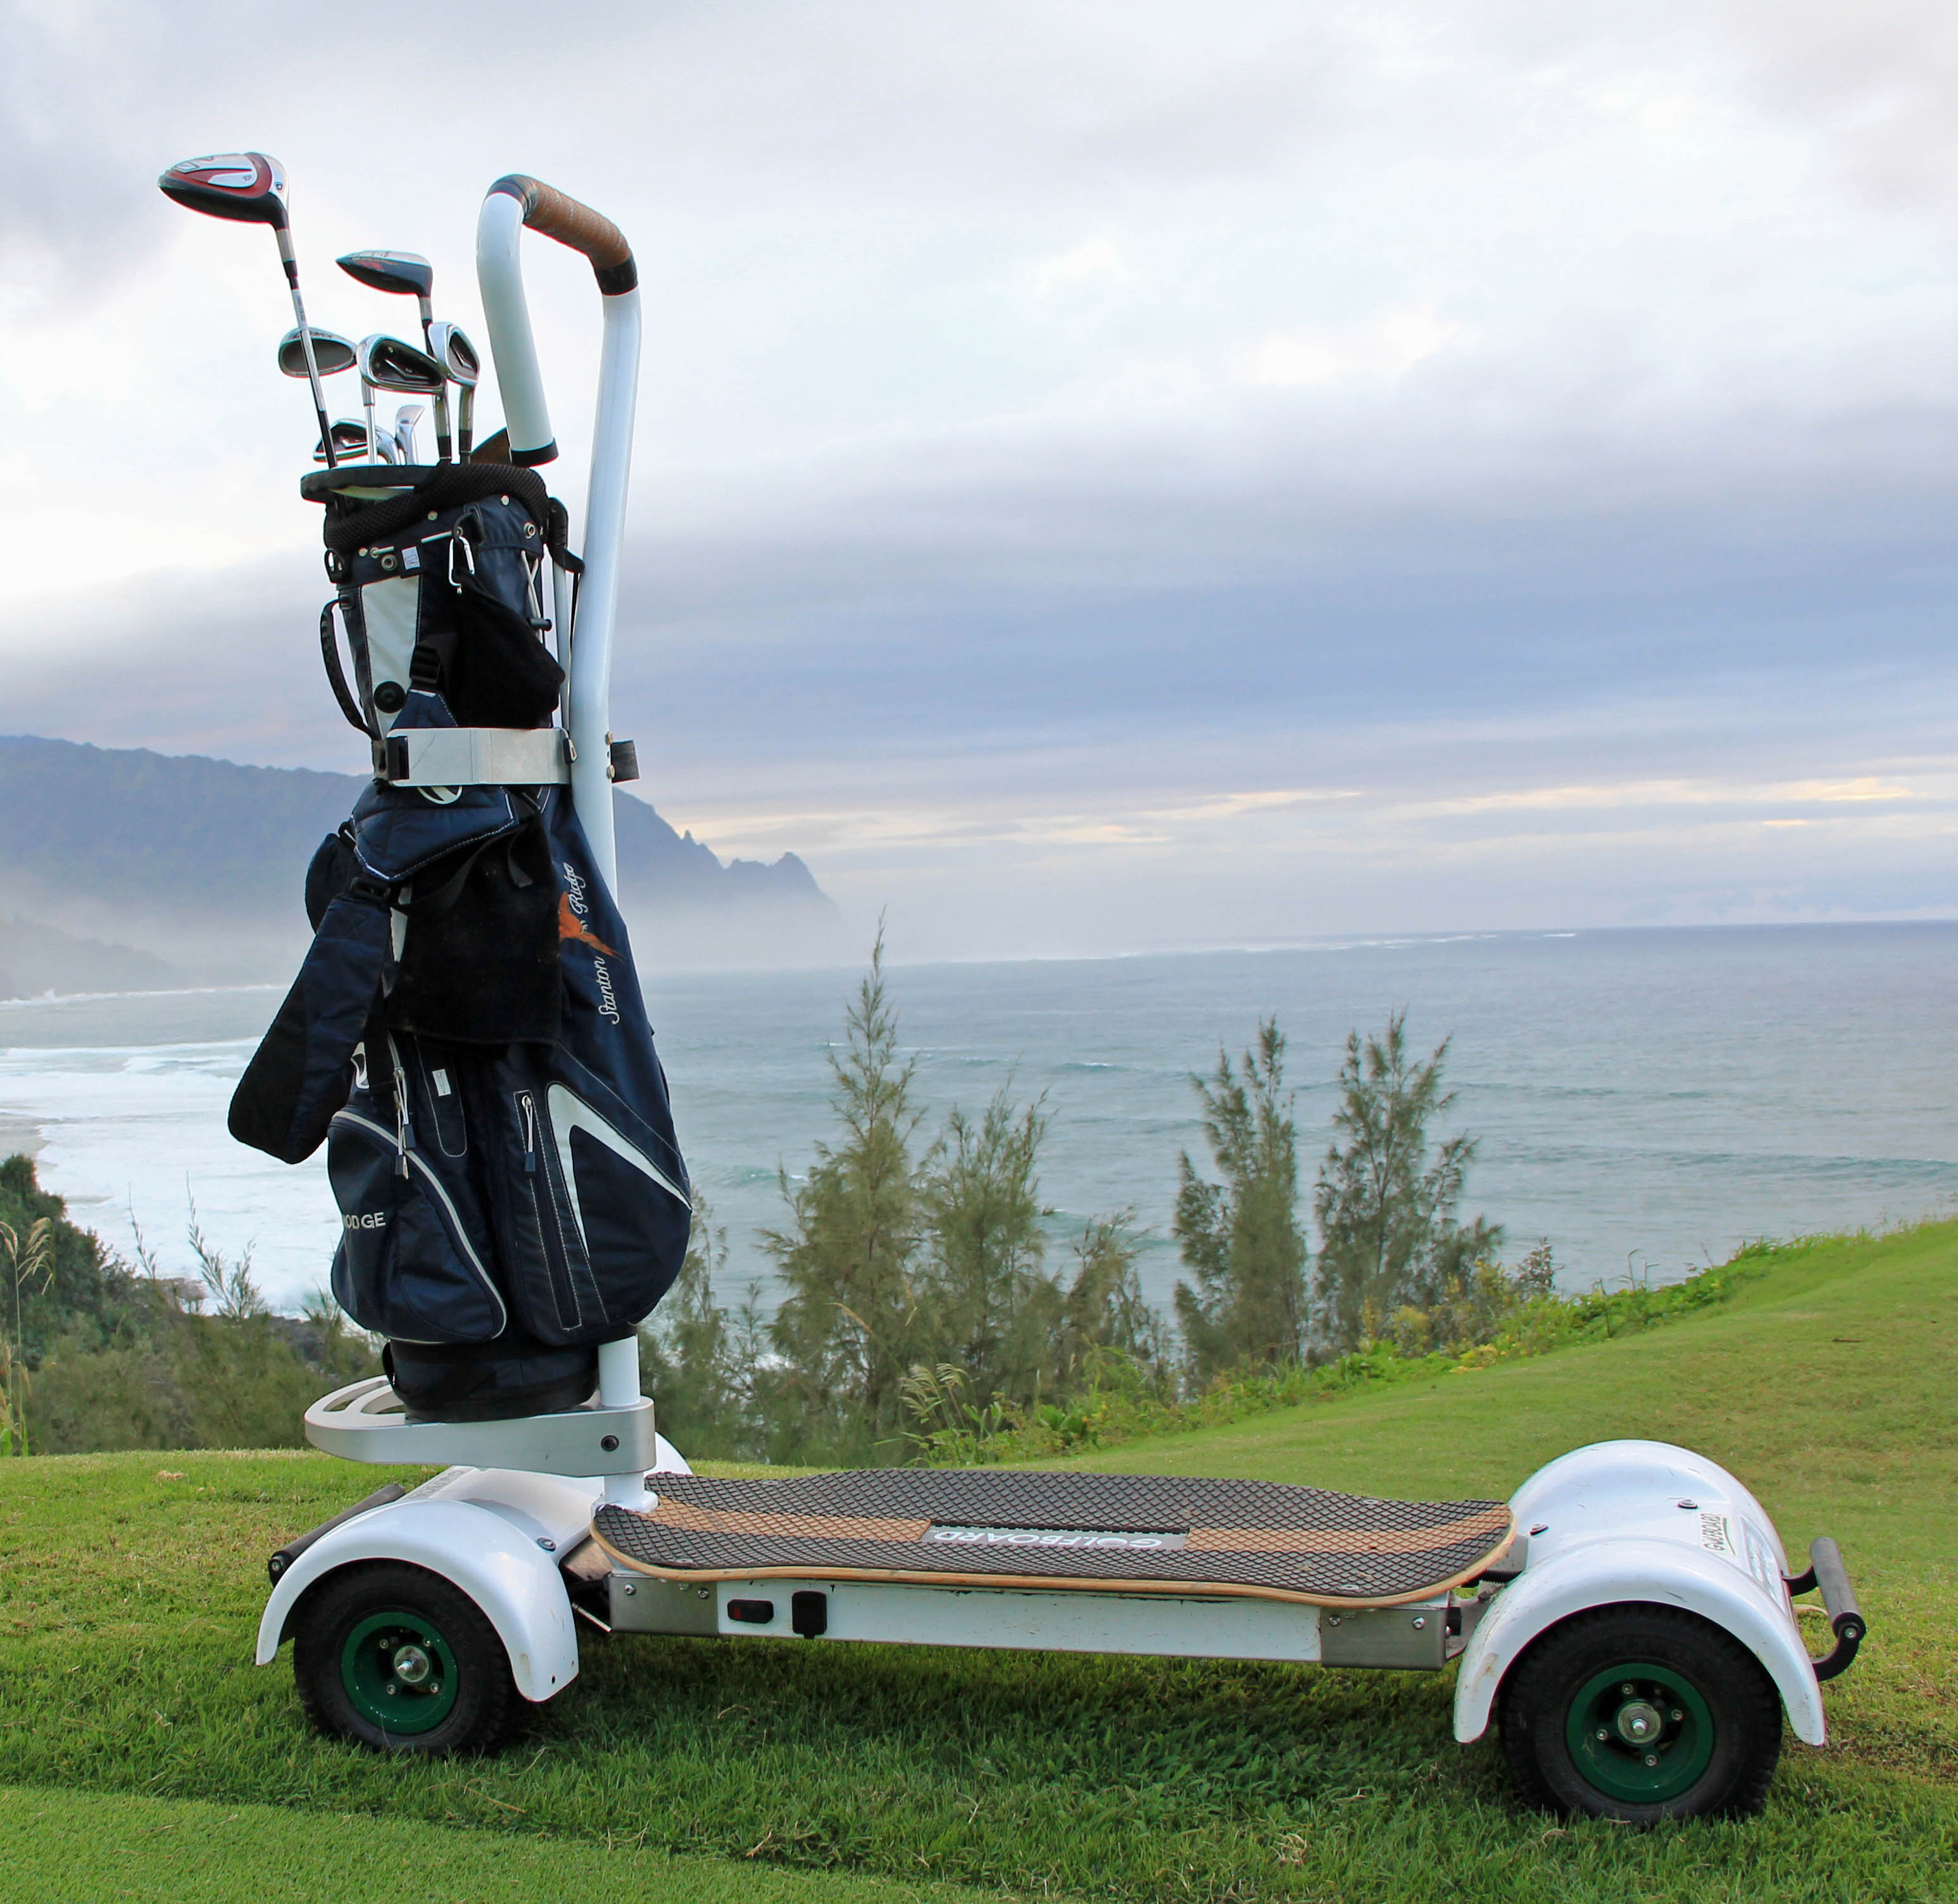 GolfBoard, Surf The Earth